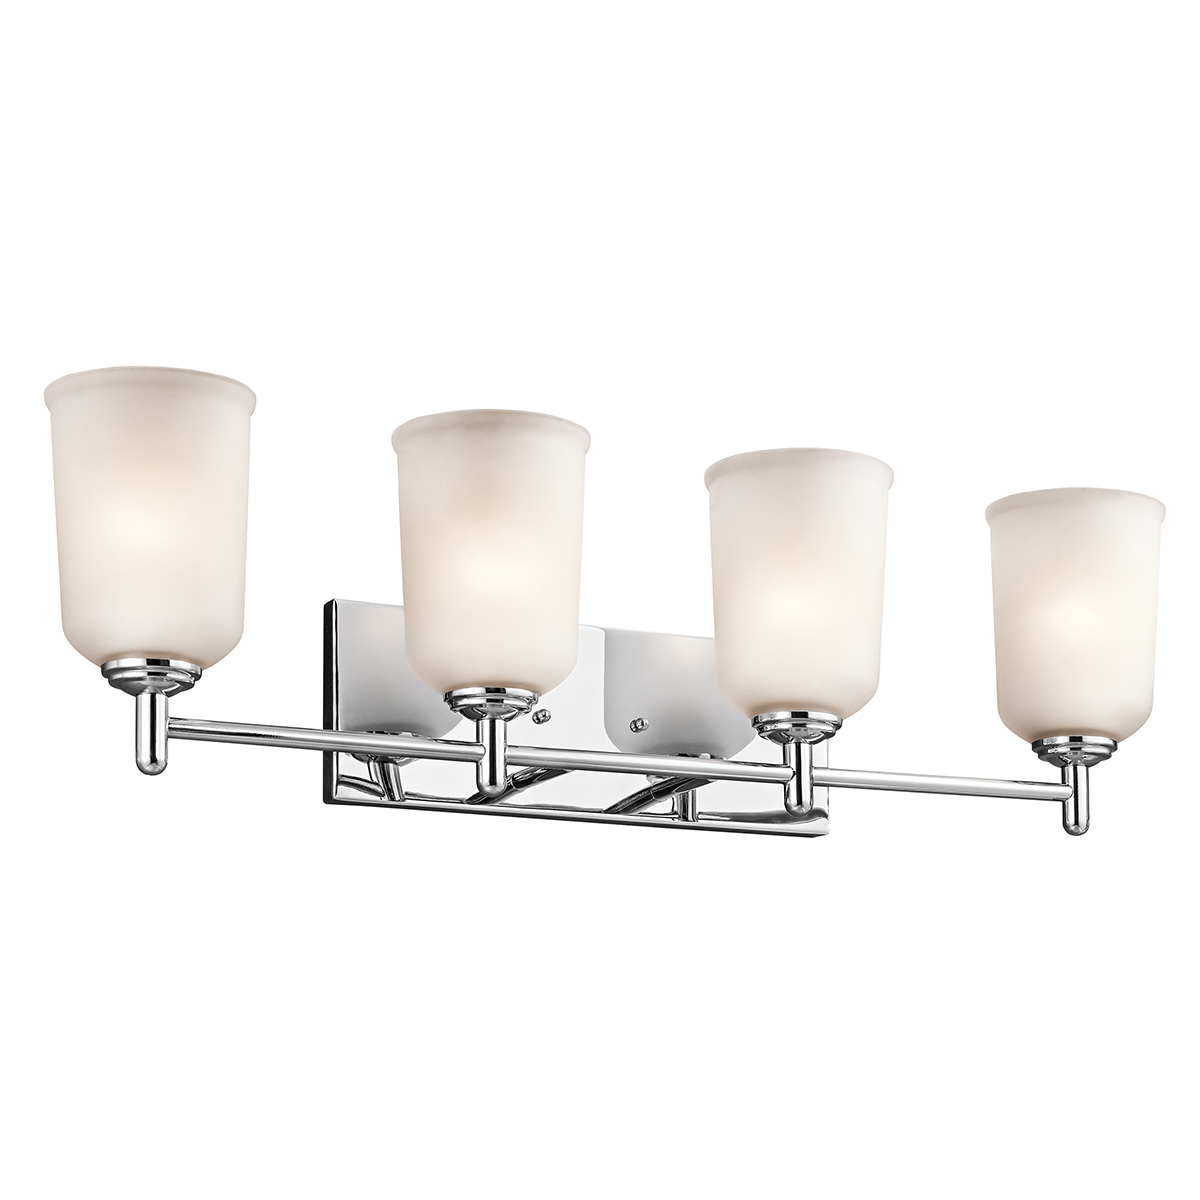 Kichler lighting 45575ch shailene 4 light bath fixture for 4 light bathroom fixture